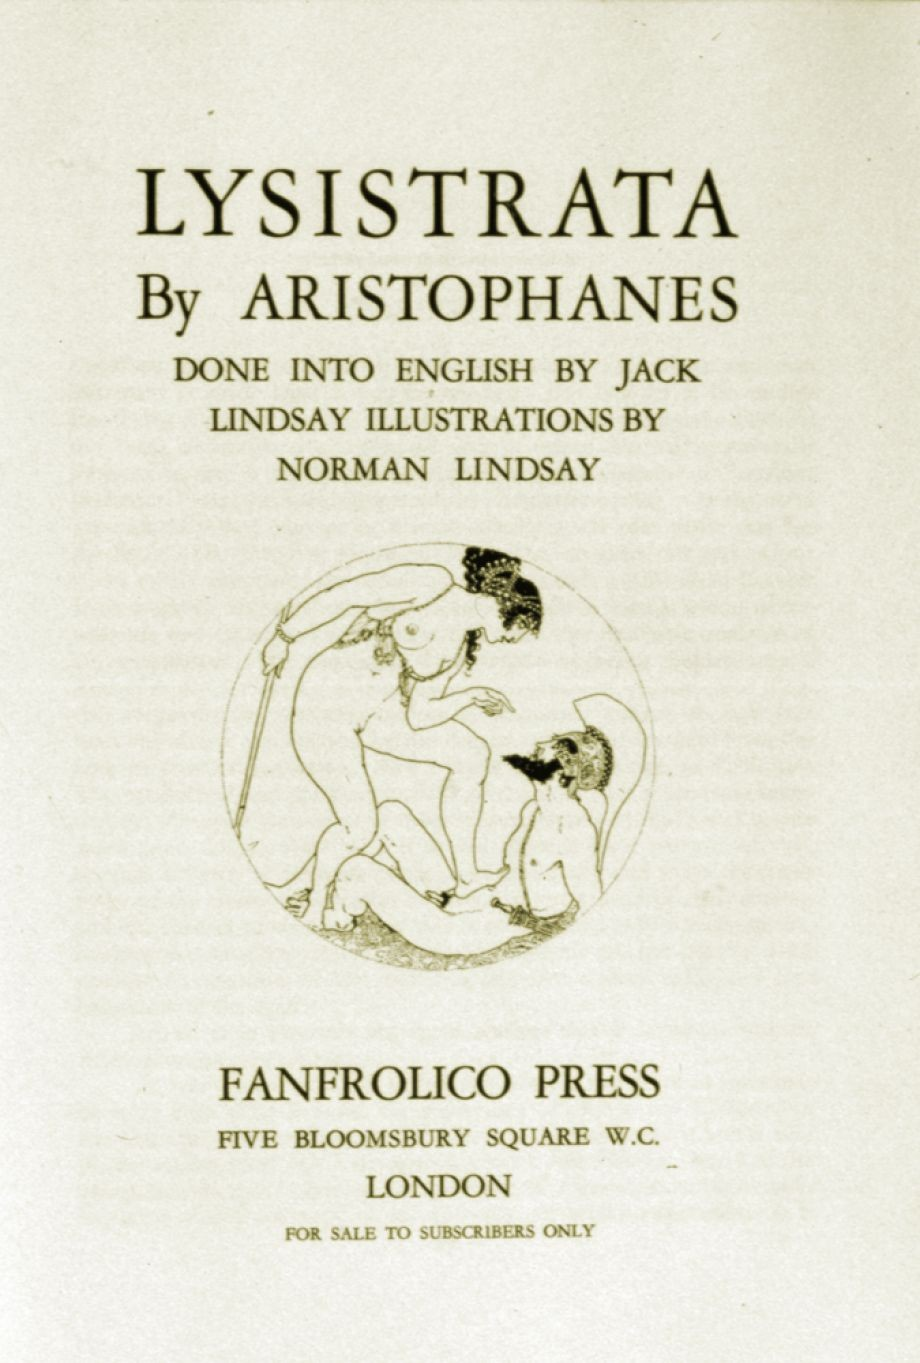 Lysistrata by Aristophanes Fanfrolico Press